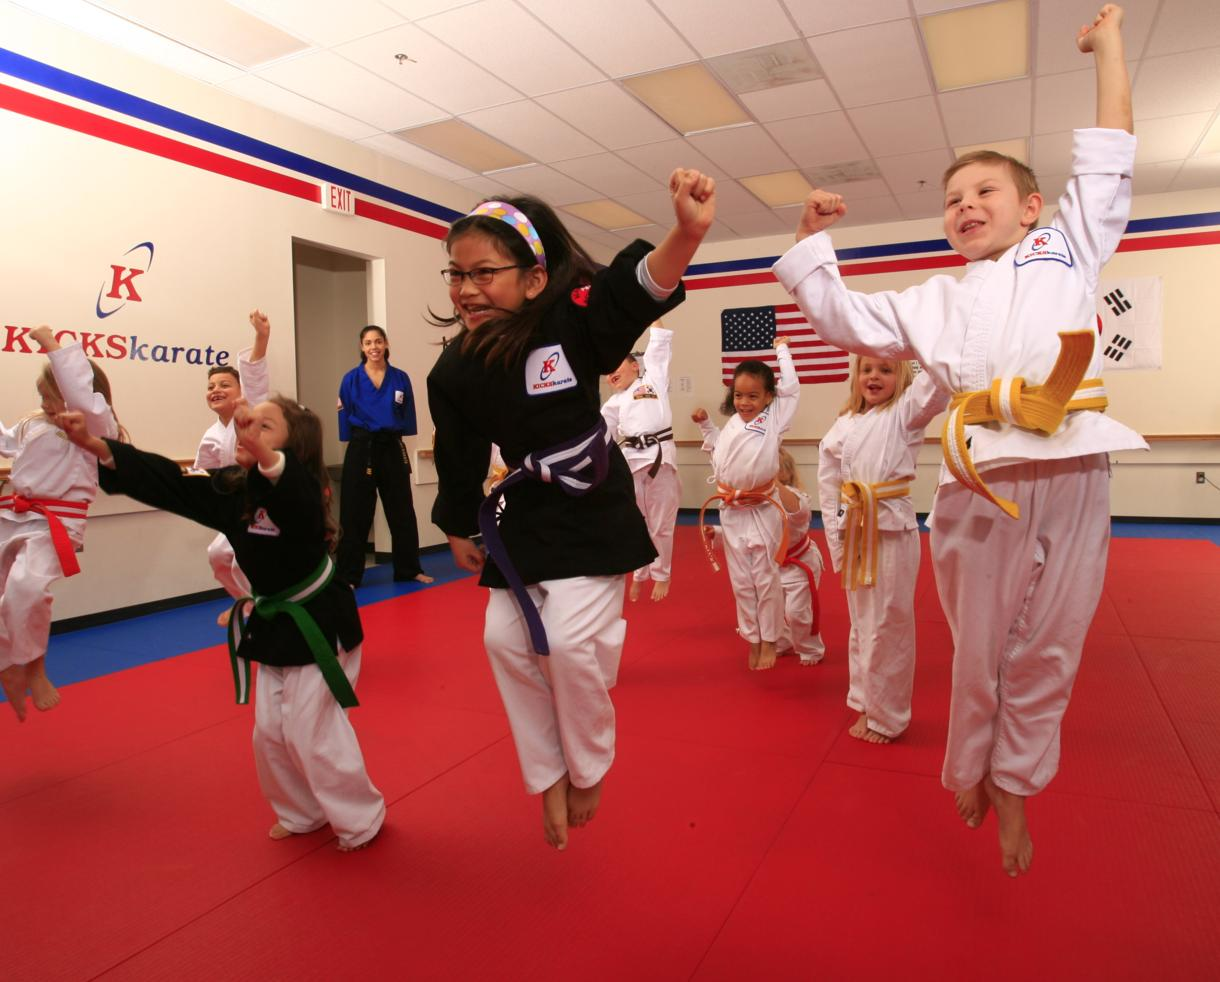 $49 for 1 Private, 3 Group Classes and a Gear Bag, Uniform and an Aluminum Water Bottle at Kicks Karate - 9 Locations! ($200 value - 76% off)